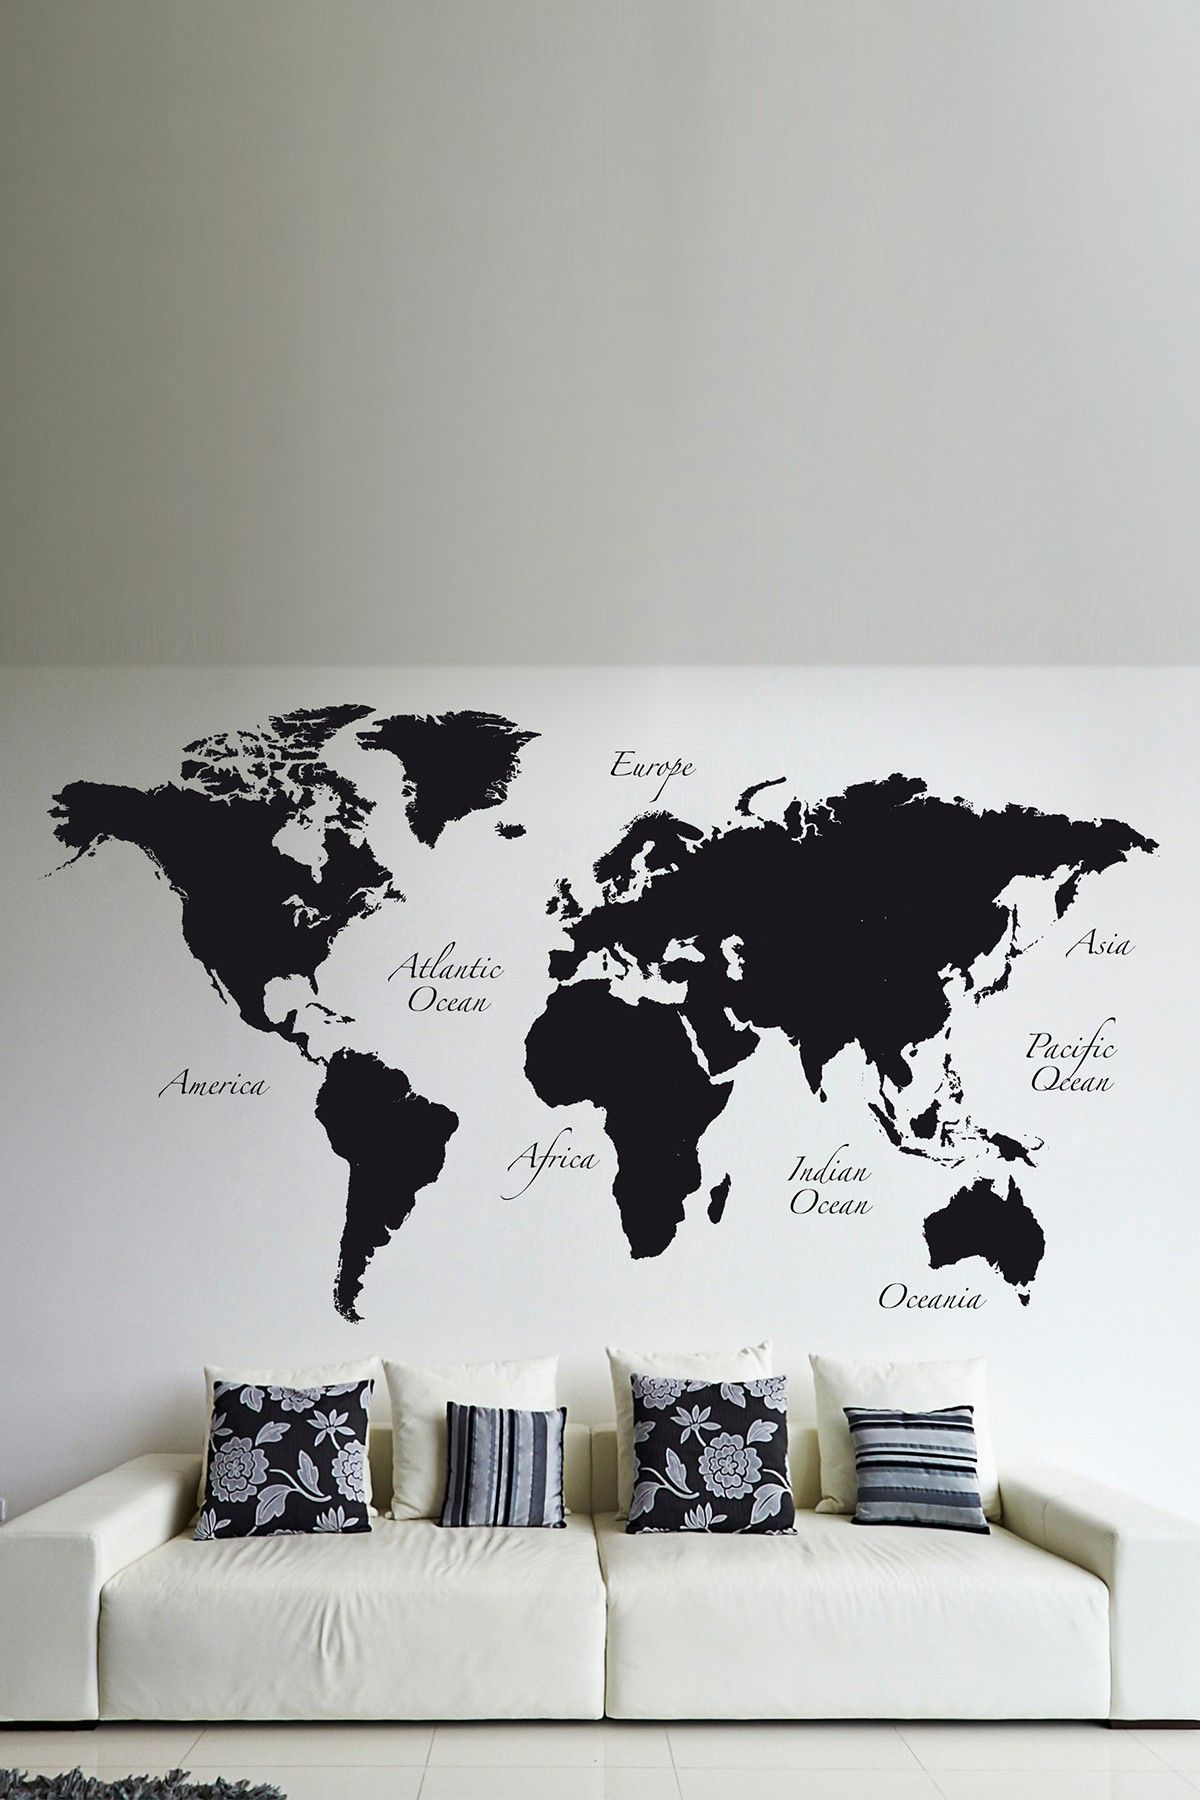 Black world map wall decal by brewster home fashions on hautelook black world map wall decal by brewster home fashions on hautelook gumiabroncs Image collections